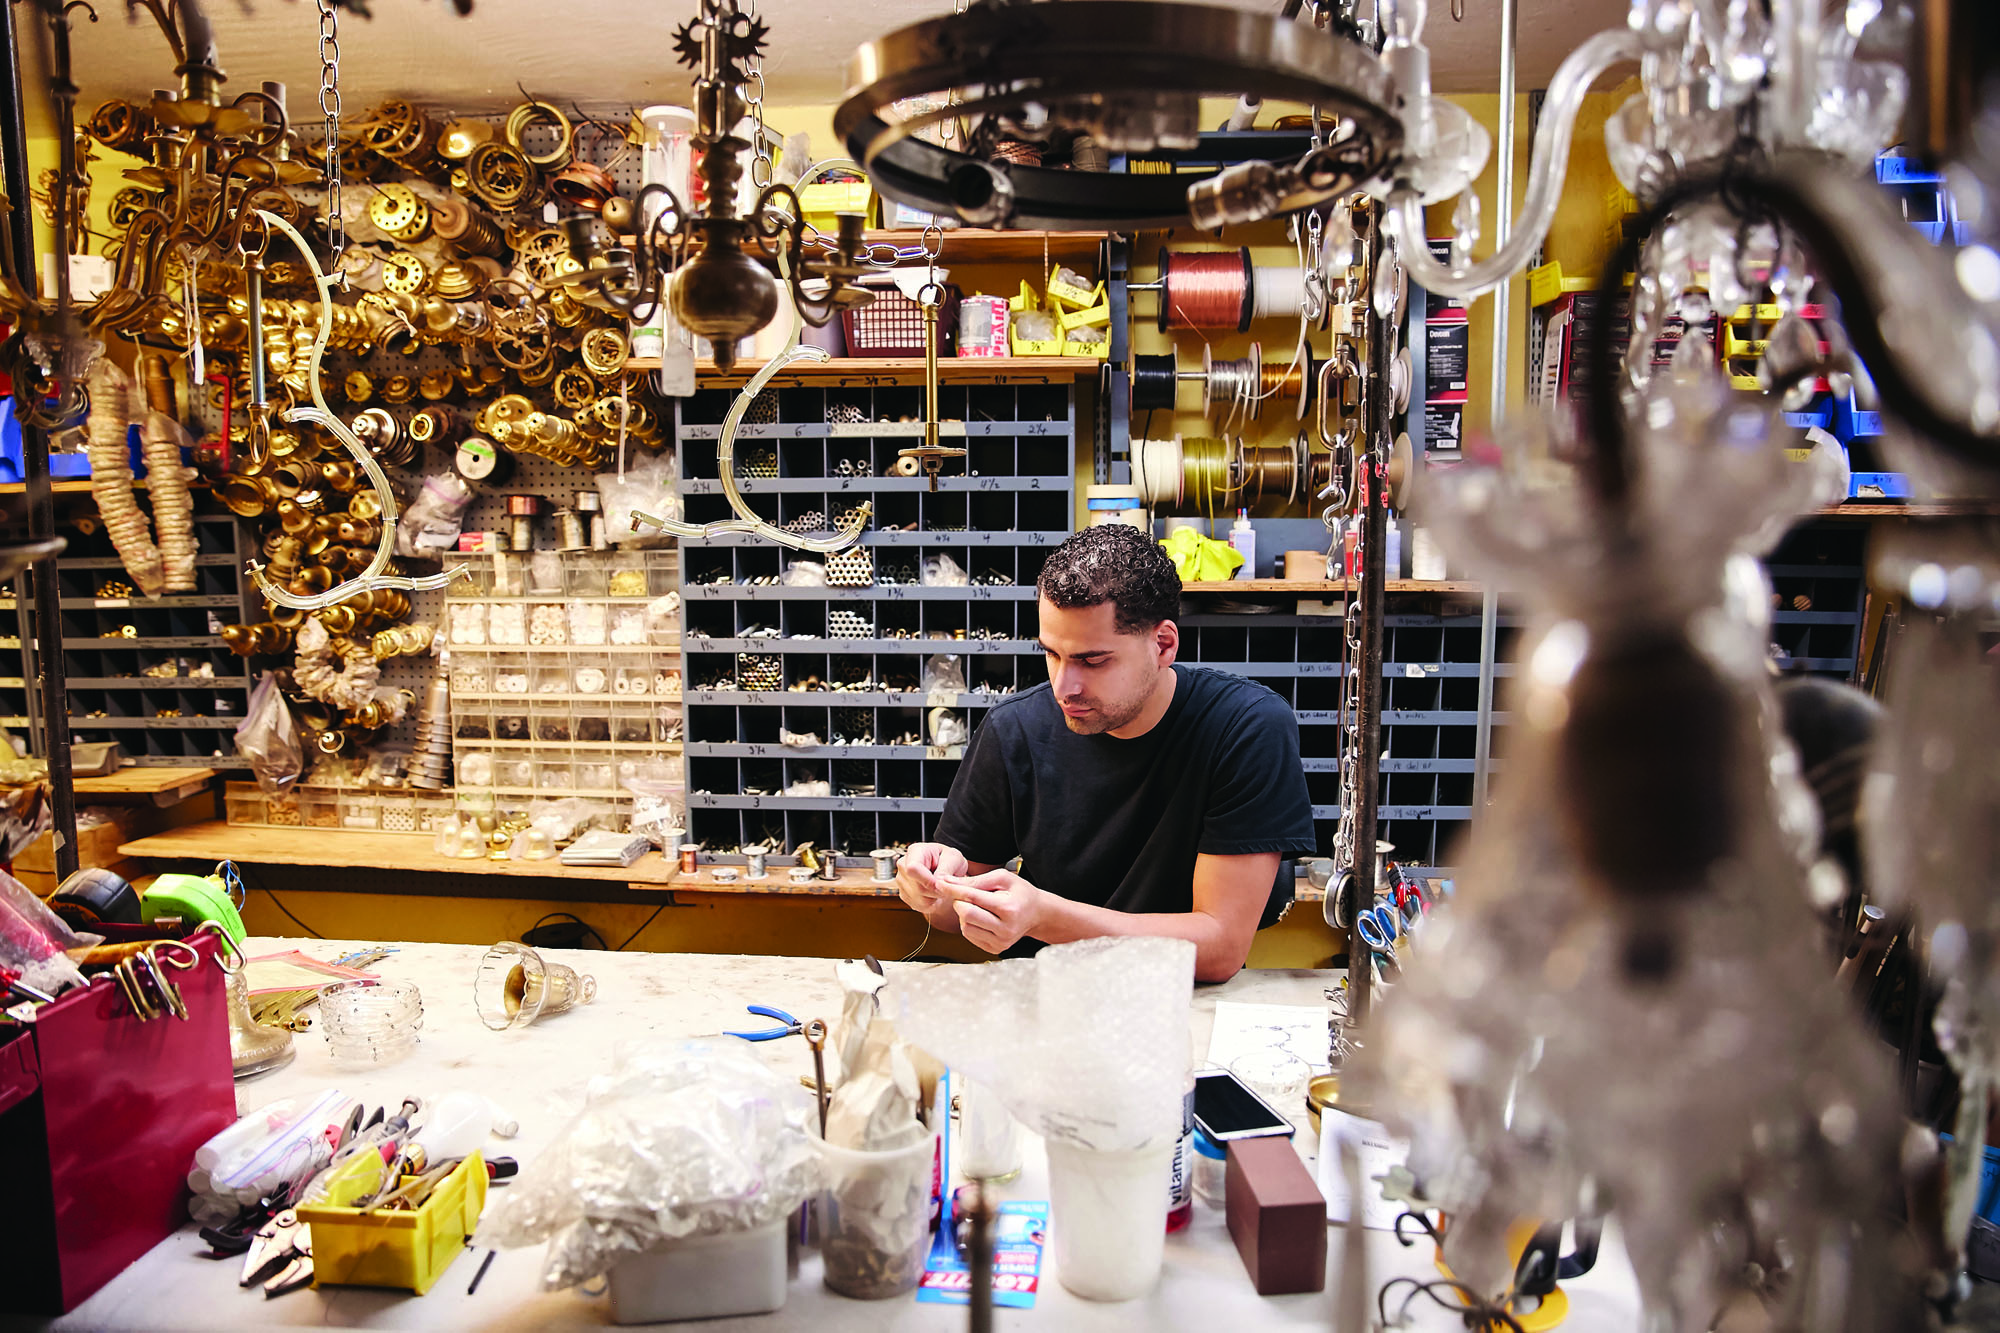 Appleton Antiques restoring antique lighting fixtures